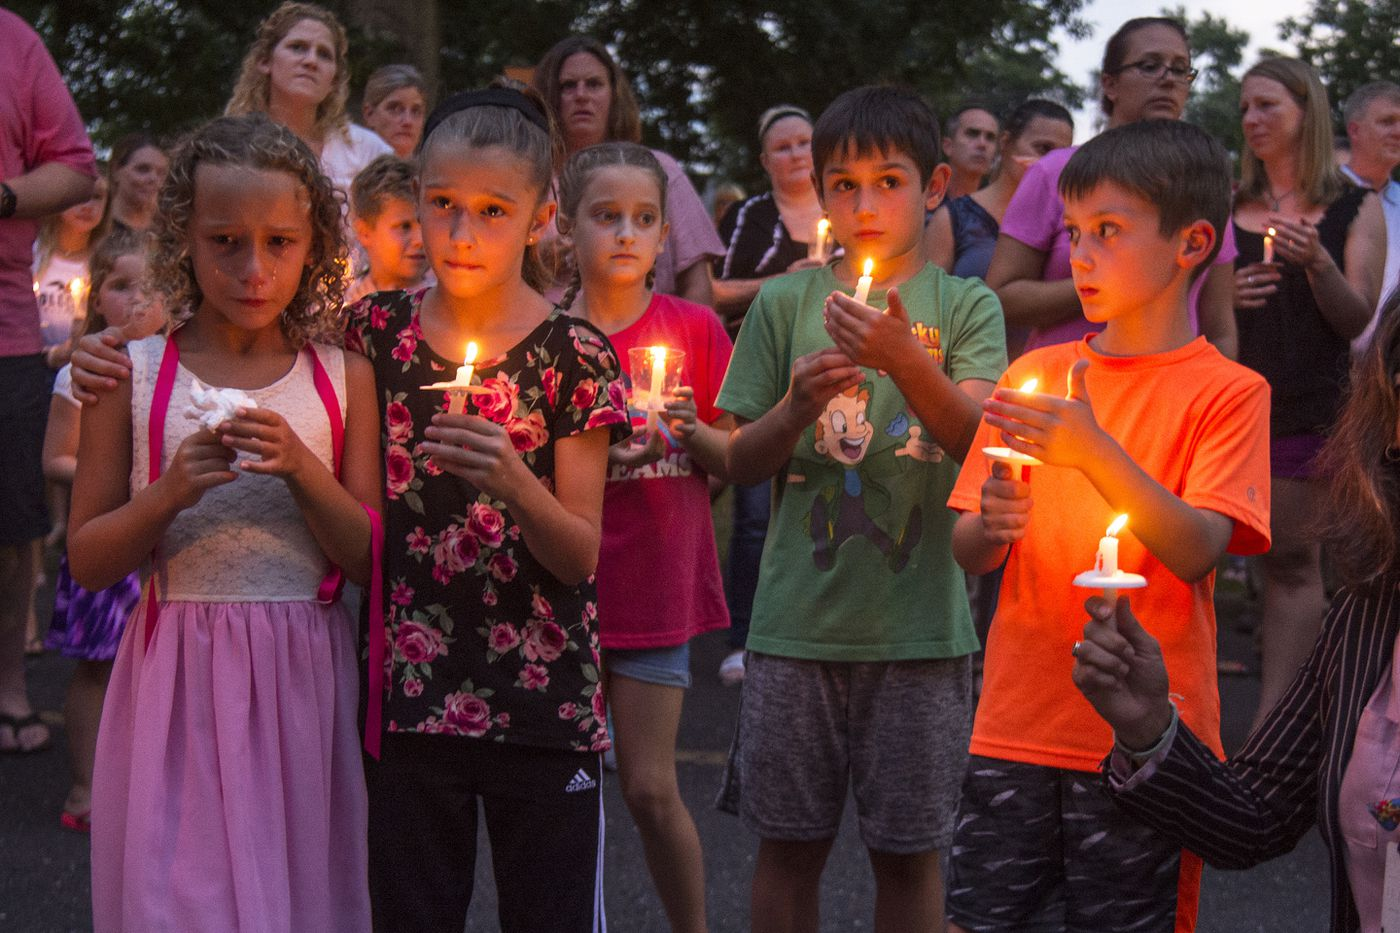 Months before Kayden Mancuso's death, mom reported girl 'didn't feel safe' with her father